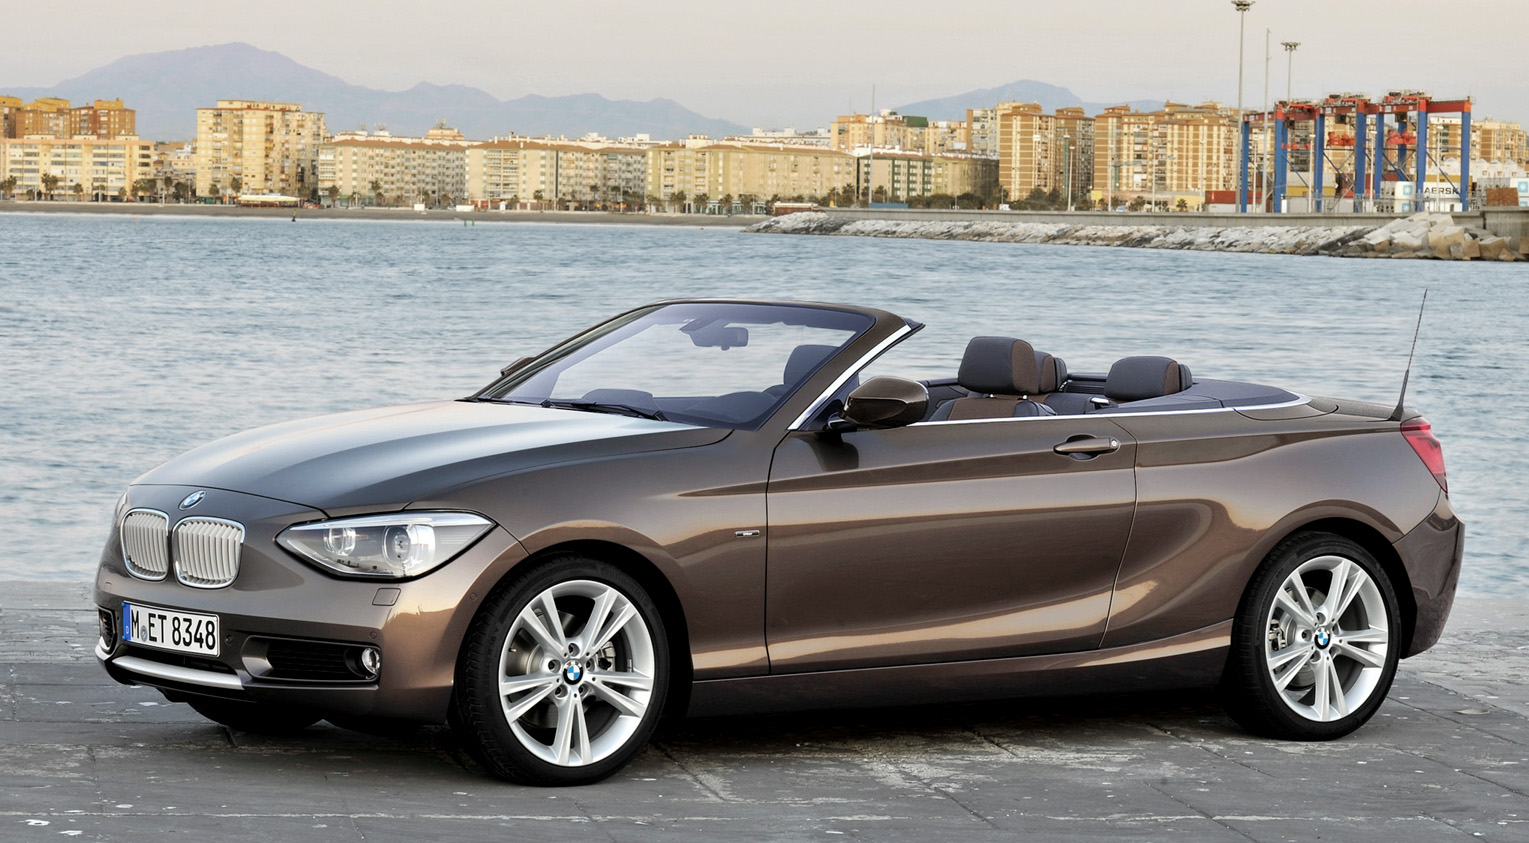 BMW 1 series 135is 2013 photo - 11